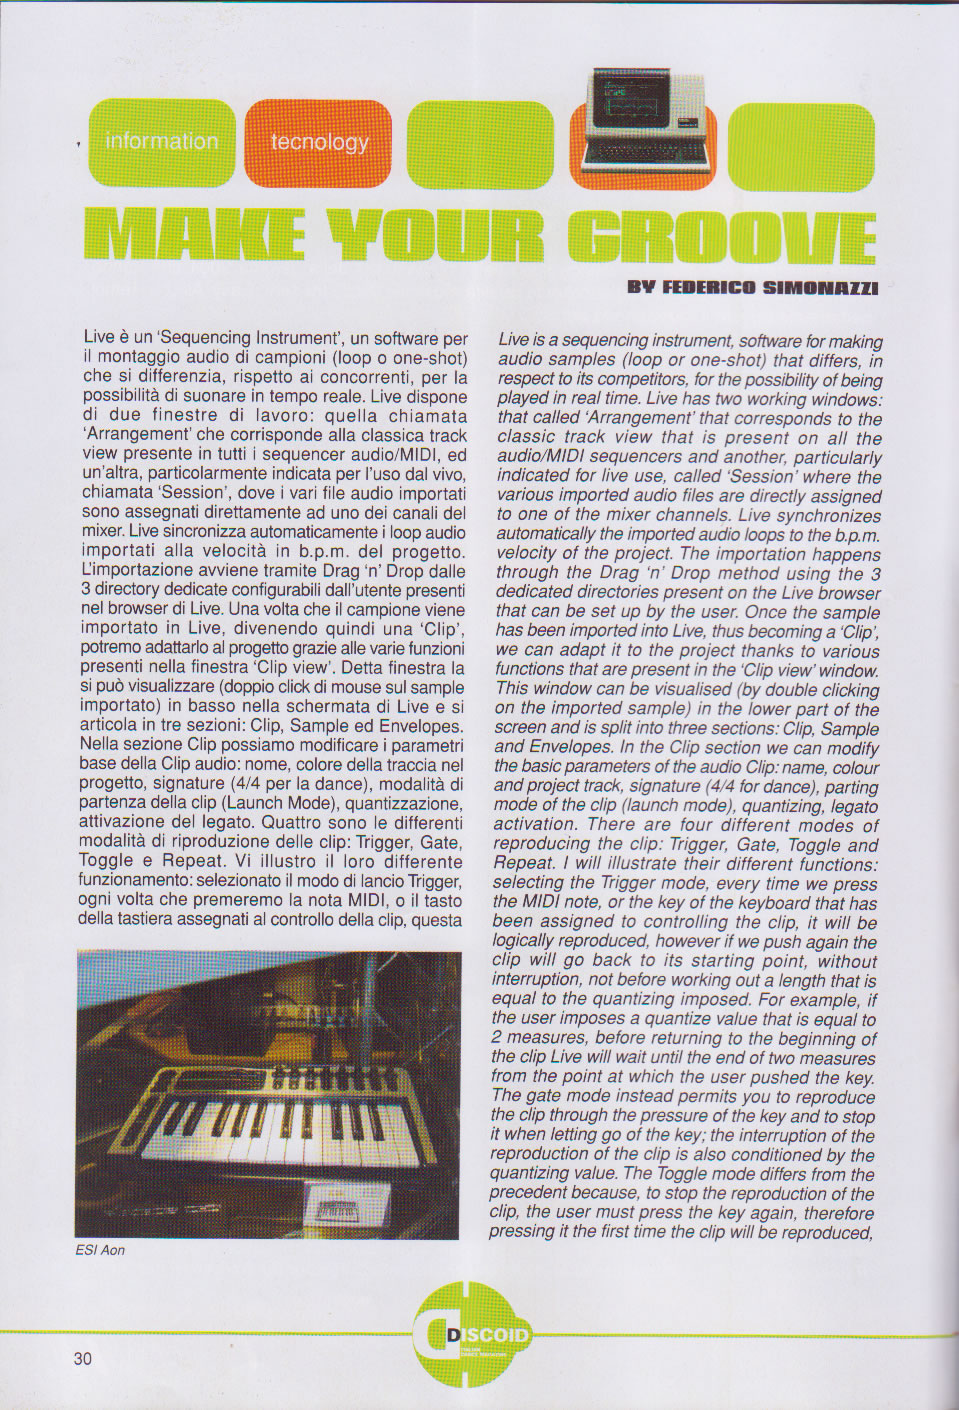 Click to enlarge image discoid-ableton-giugno-2004-pag1.jpg